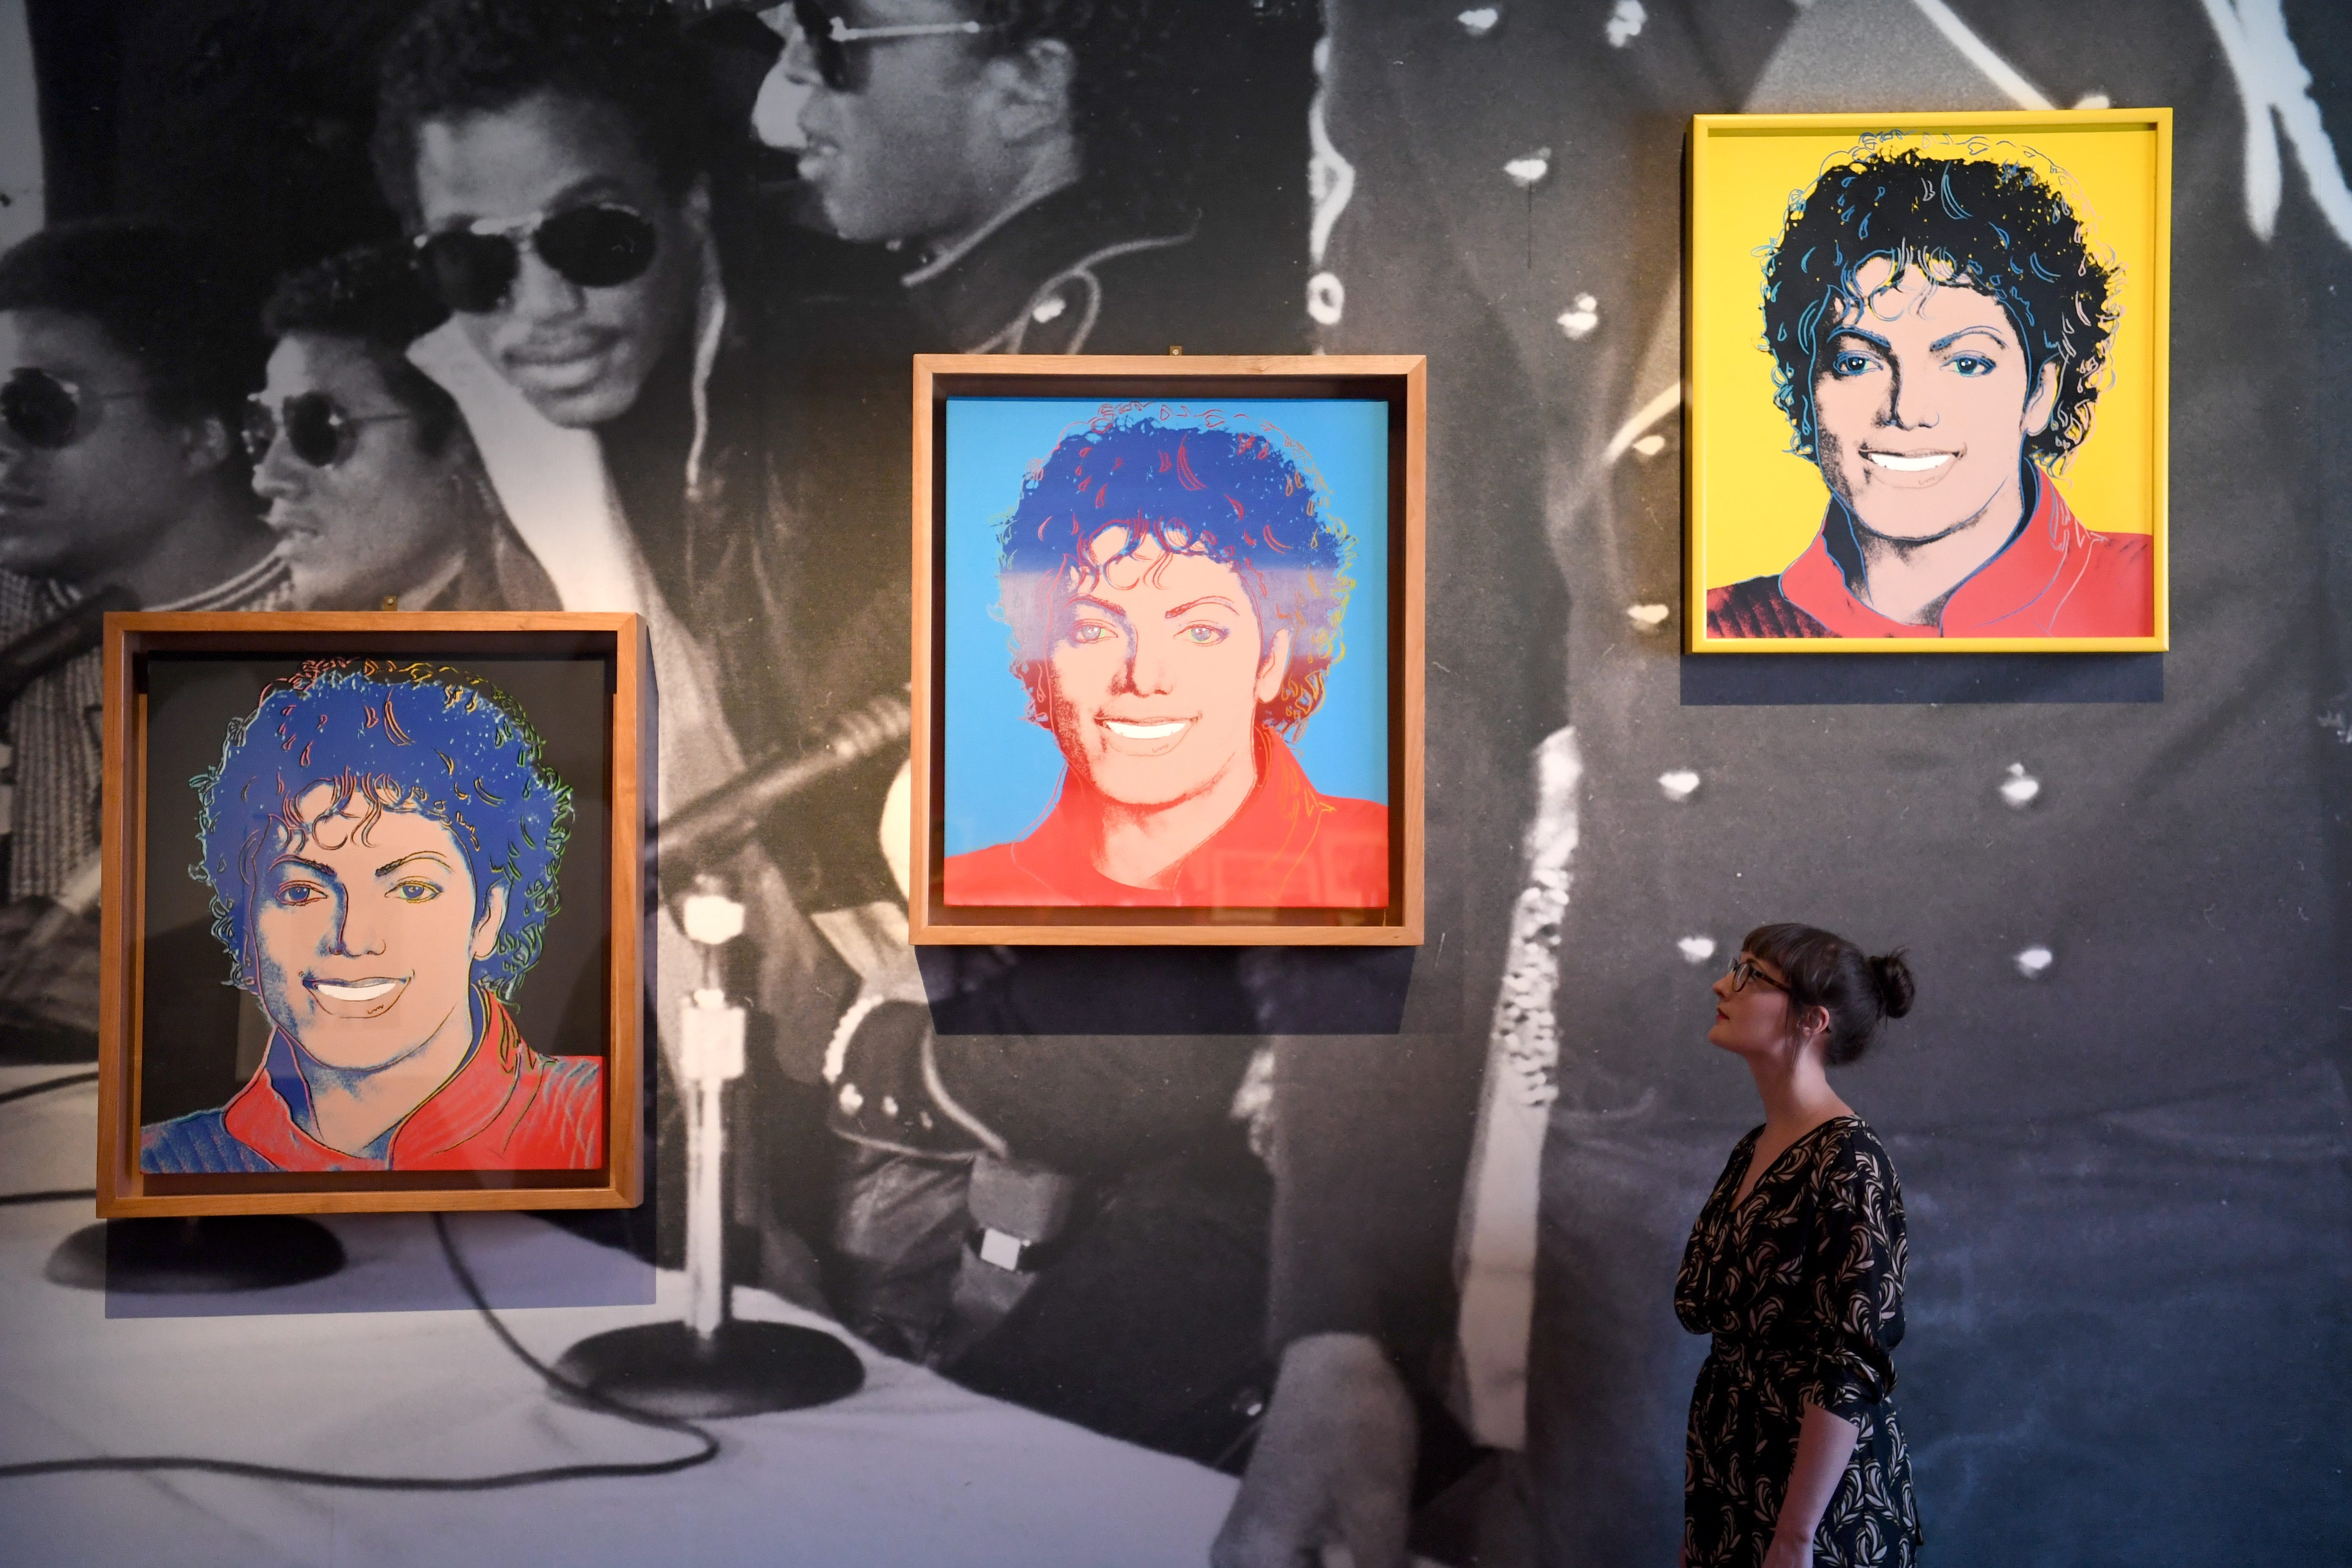 'Michael Jackson: On the Wall': New exhibition in London tells 'untold story' of the late pop superstar